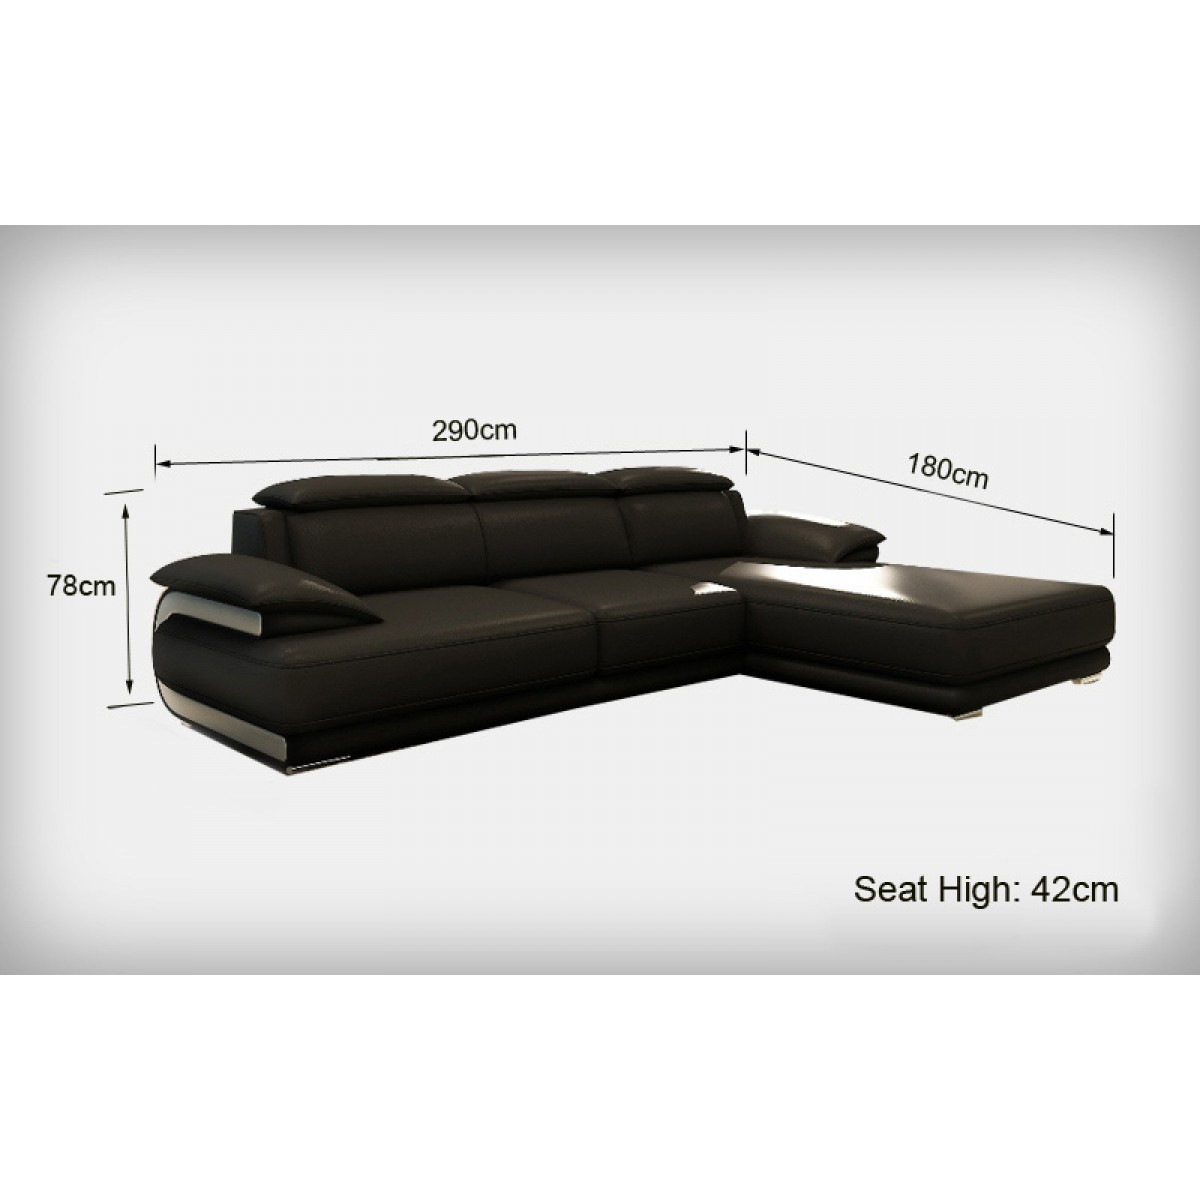 canap d 39 angle en cuir marbella canap s d 39 angle en cuir. Black Bedroom Furniture Sets. Home Design Ideas